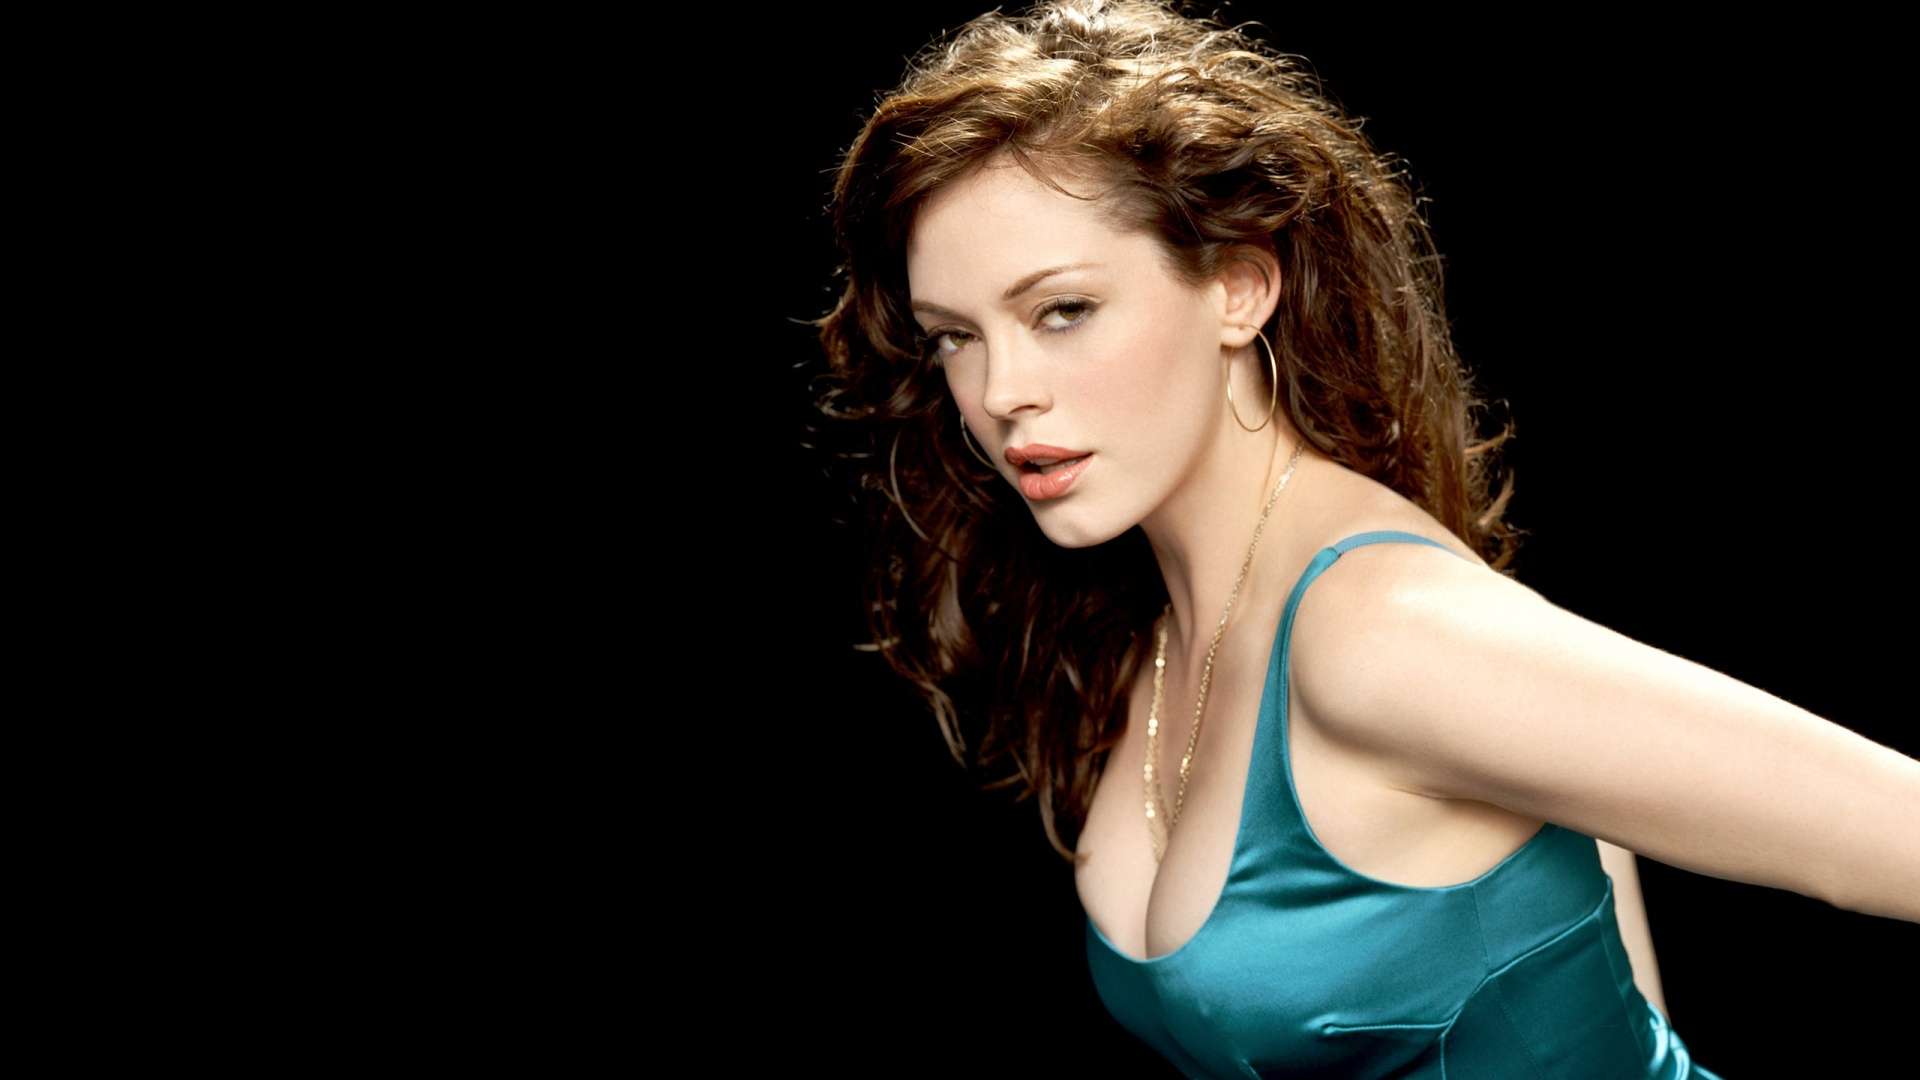 Rose Mcgowan HD Wallpapers